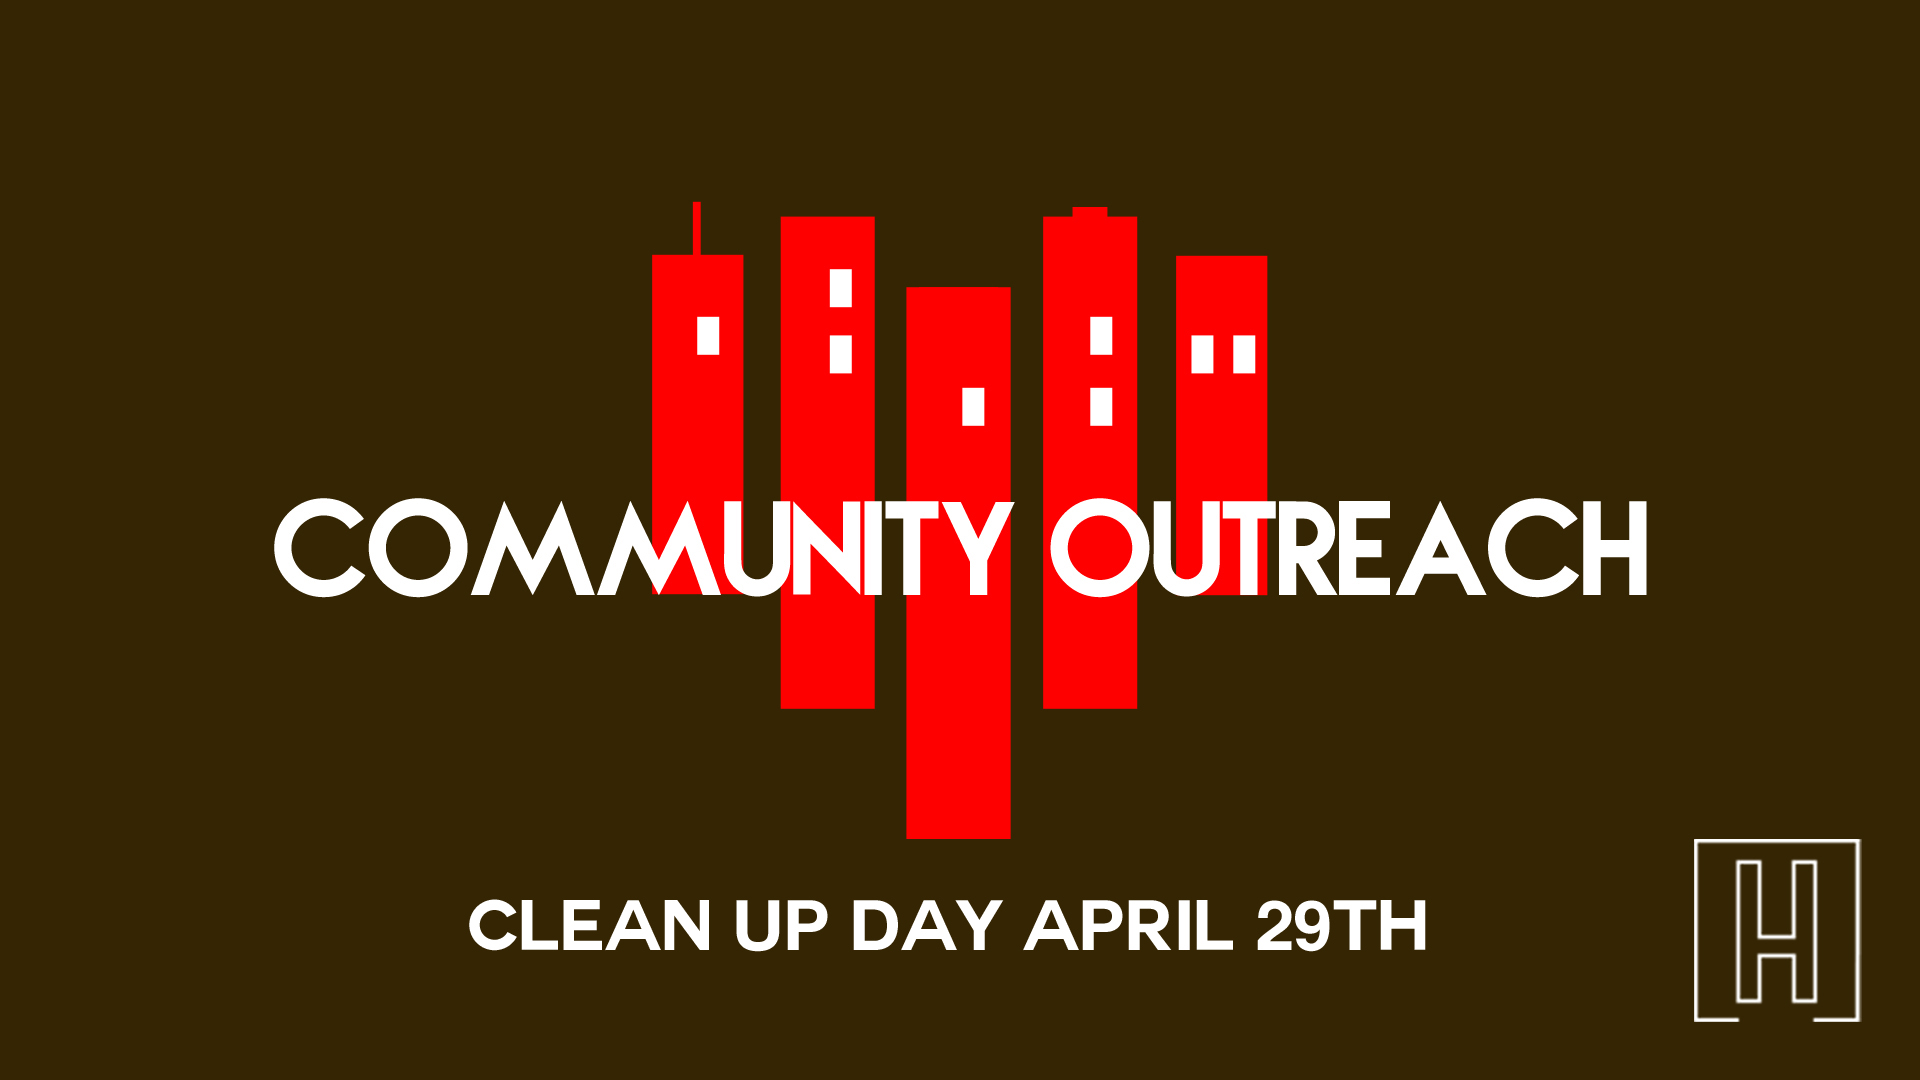 outreach clean up.jpg